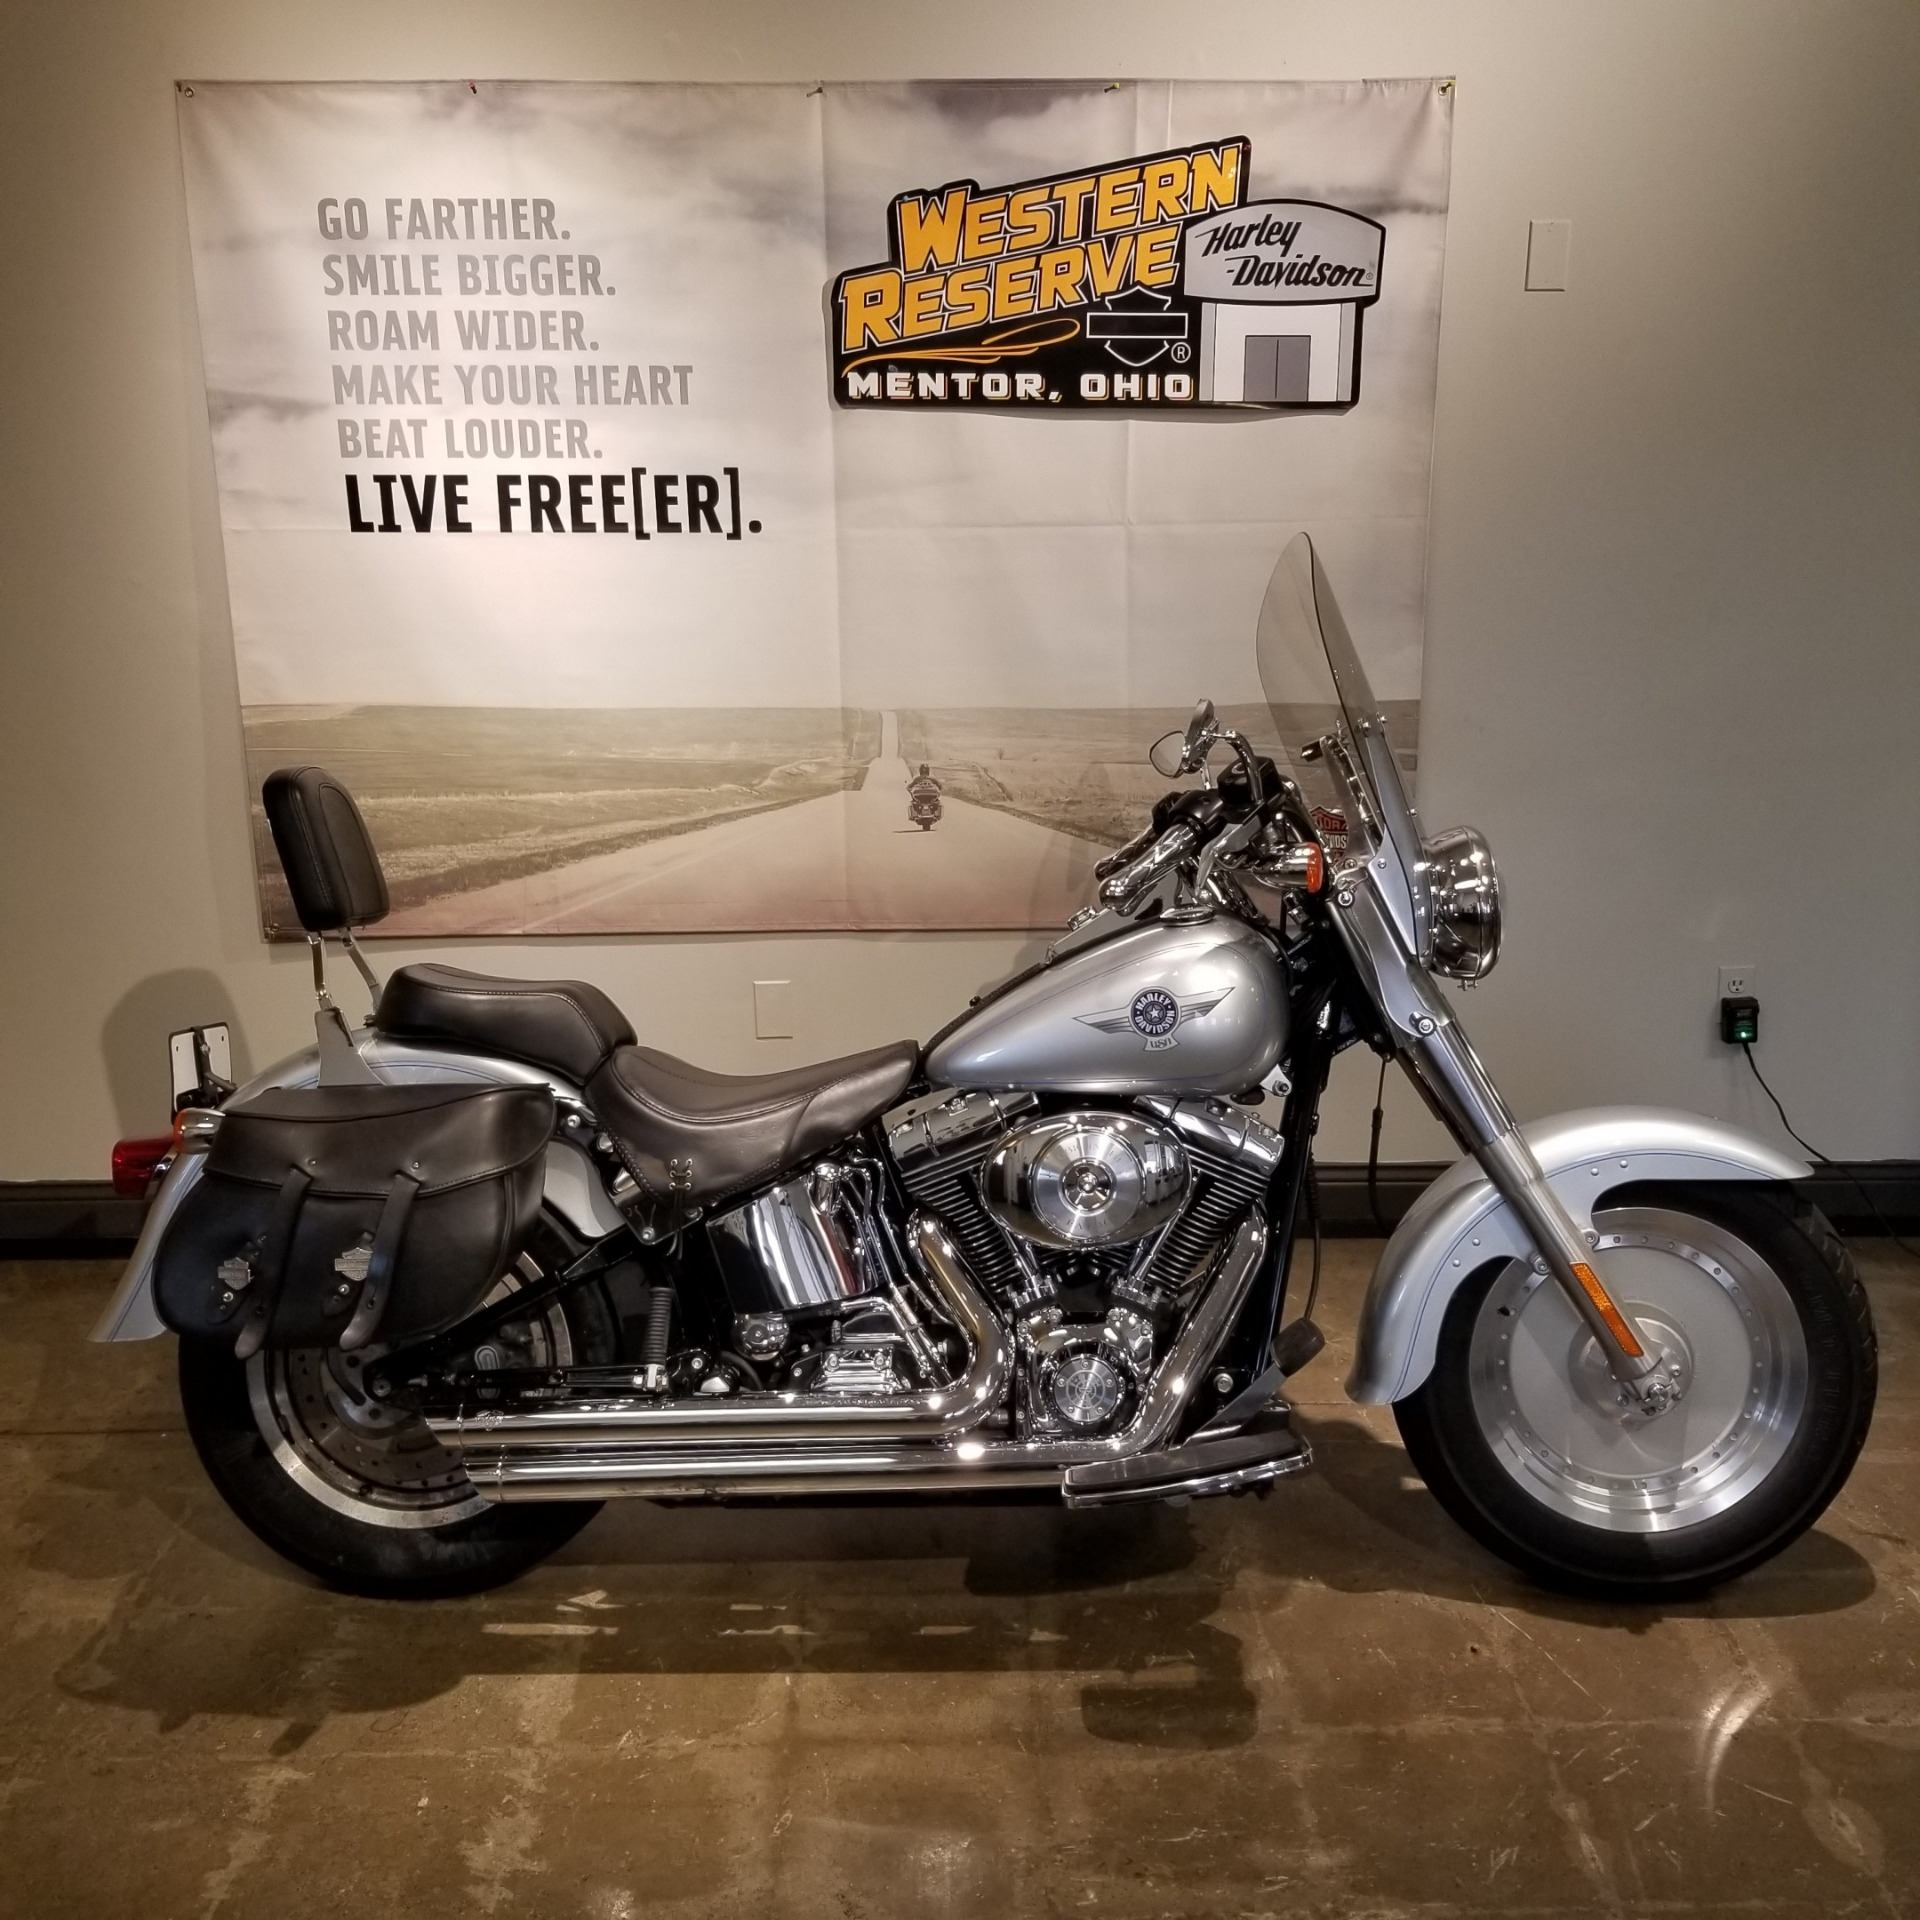 2006 Harley-Davidson Fat Boy® in Mentor, Ohio - Photo 1